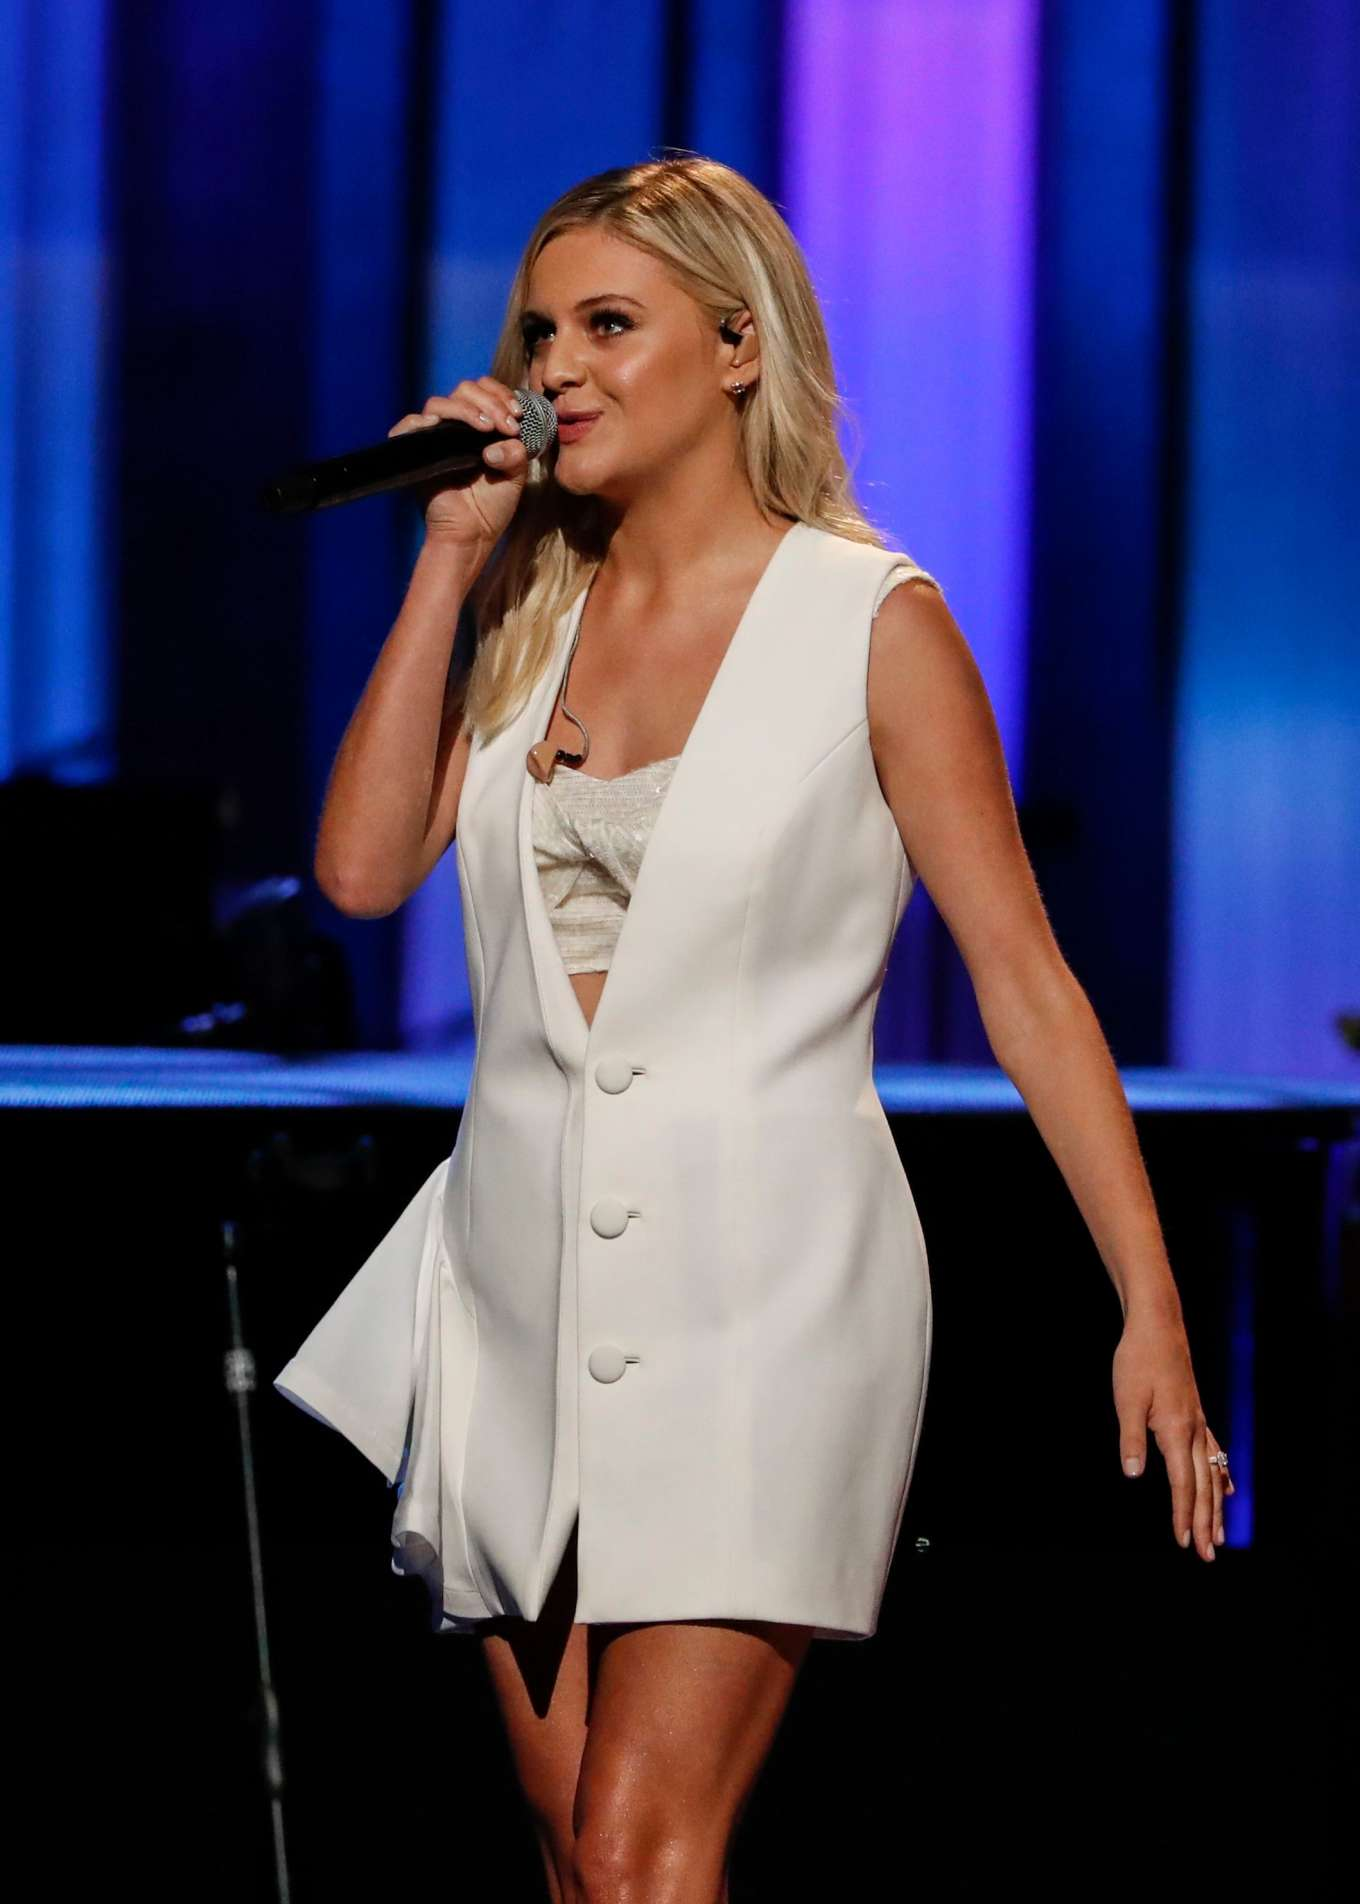 Kelsea Ballerini - Performs at the Grand Ole Opry in Nashville